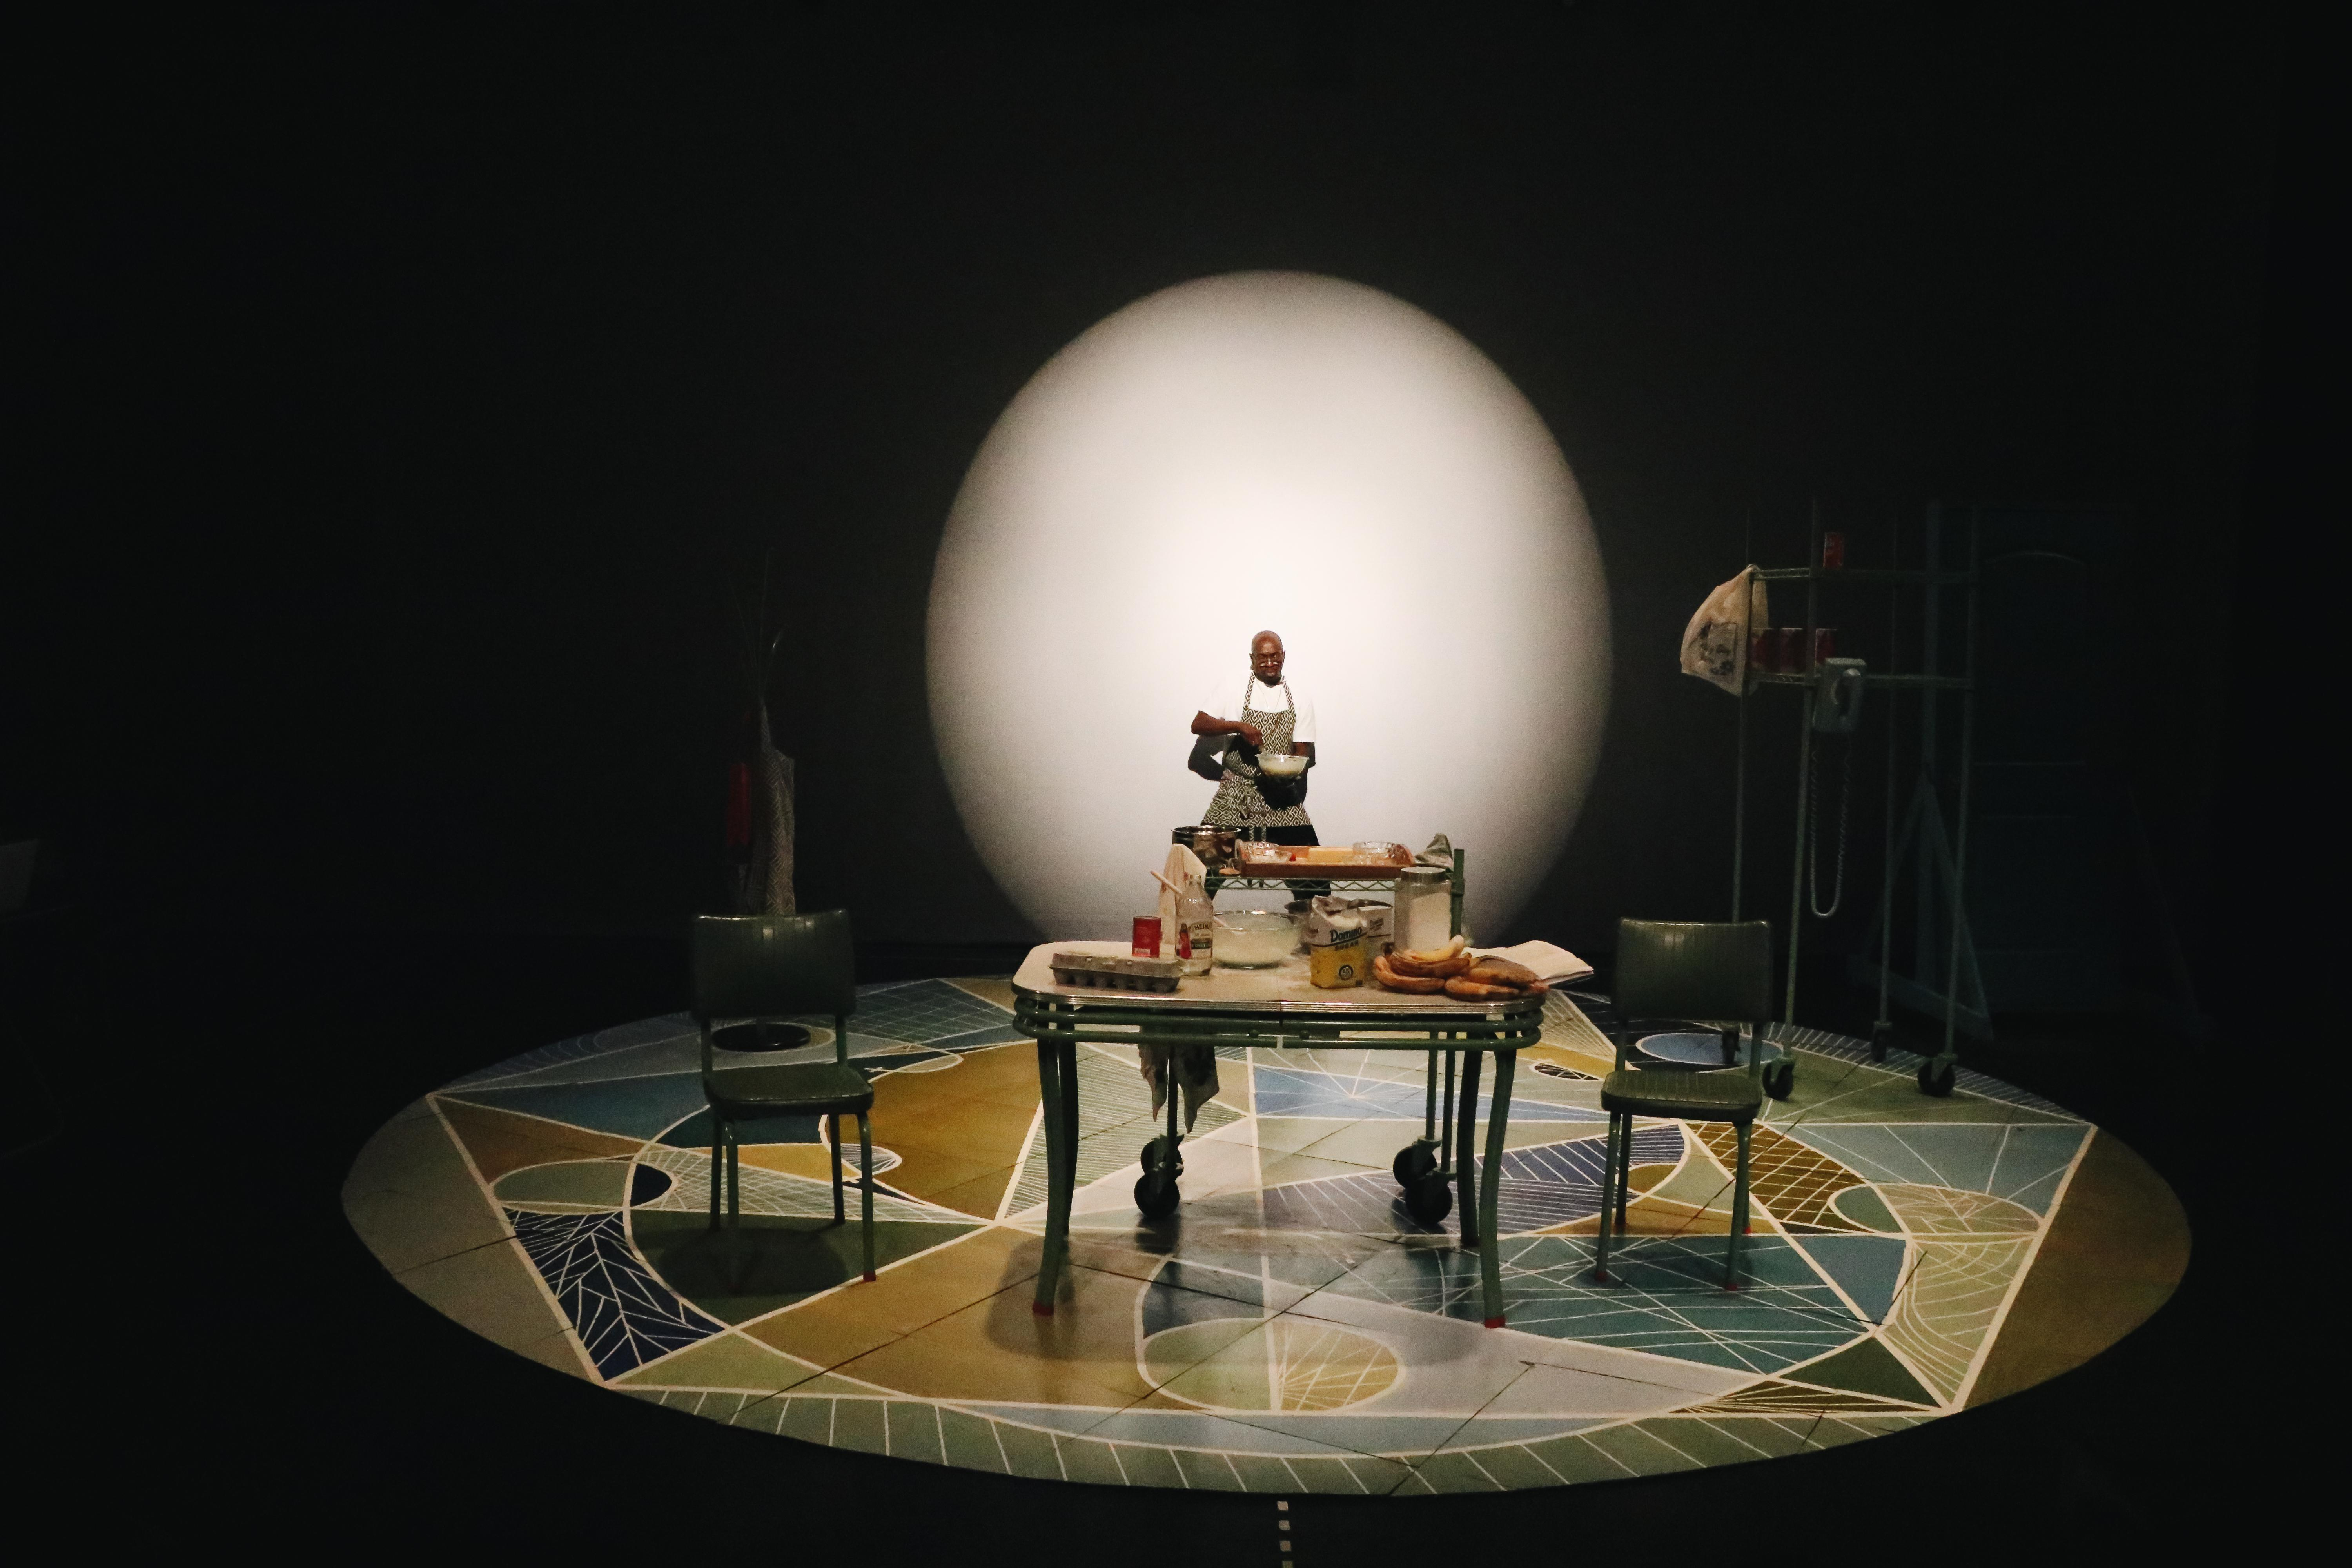 A dark-skinned man stands on a stage set like a kitchen with a mosaic circular floor and a large white sphere looming behind him.